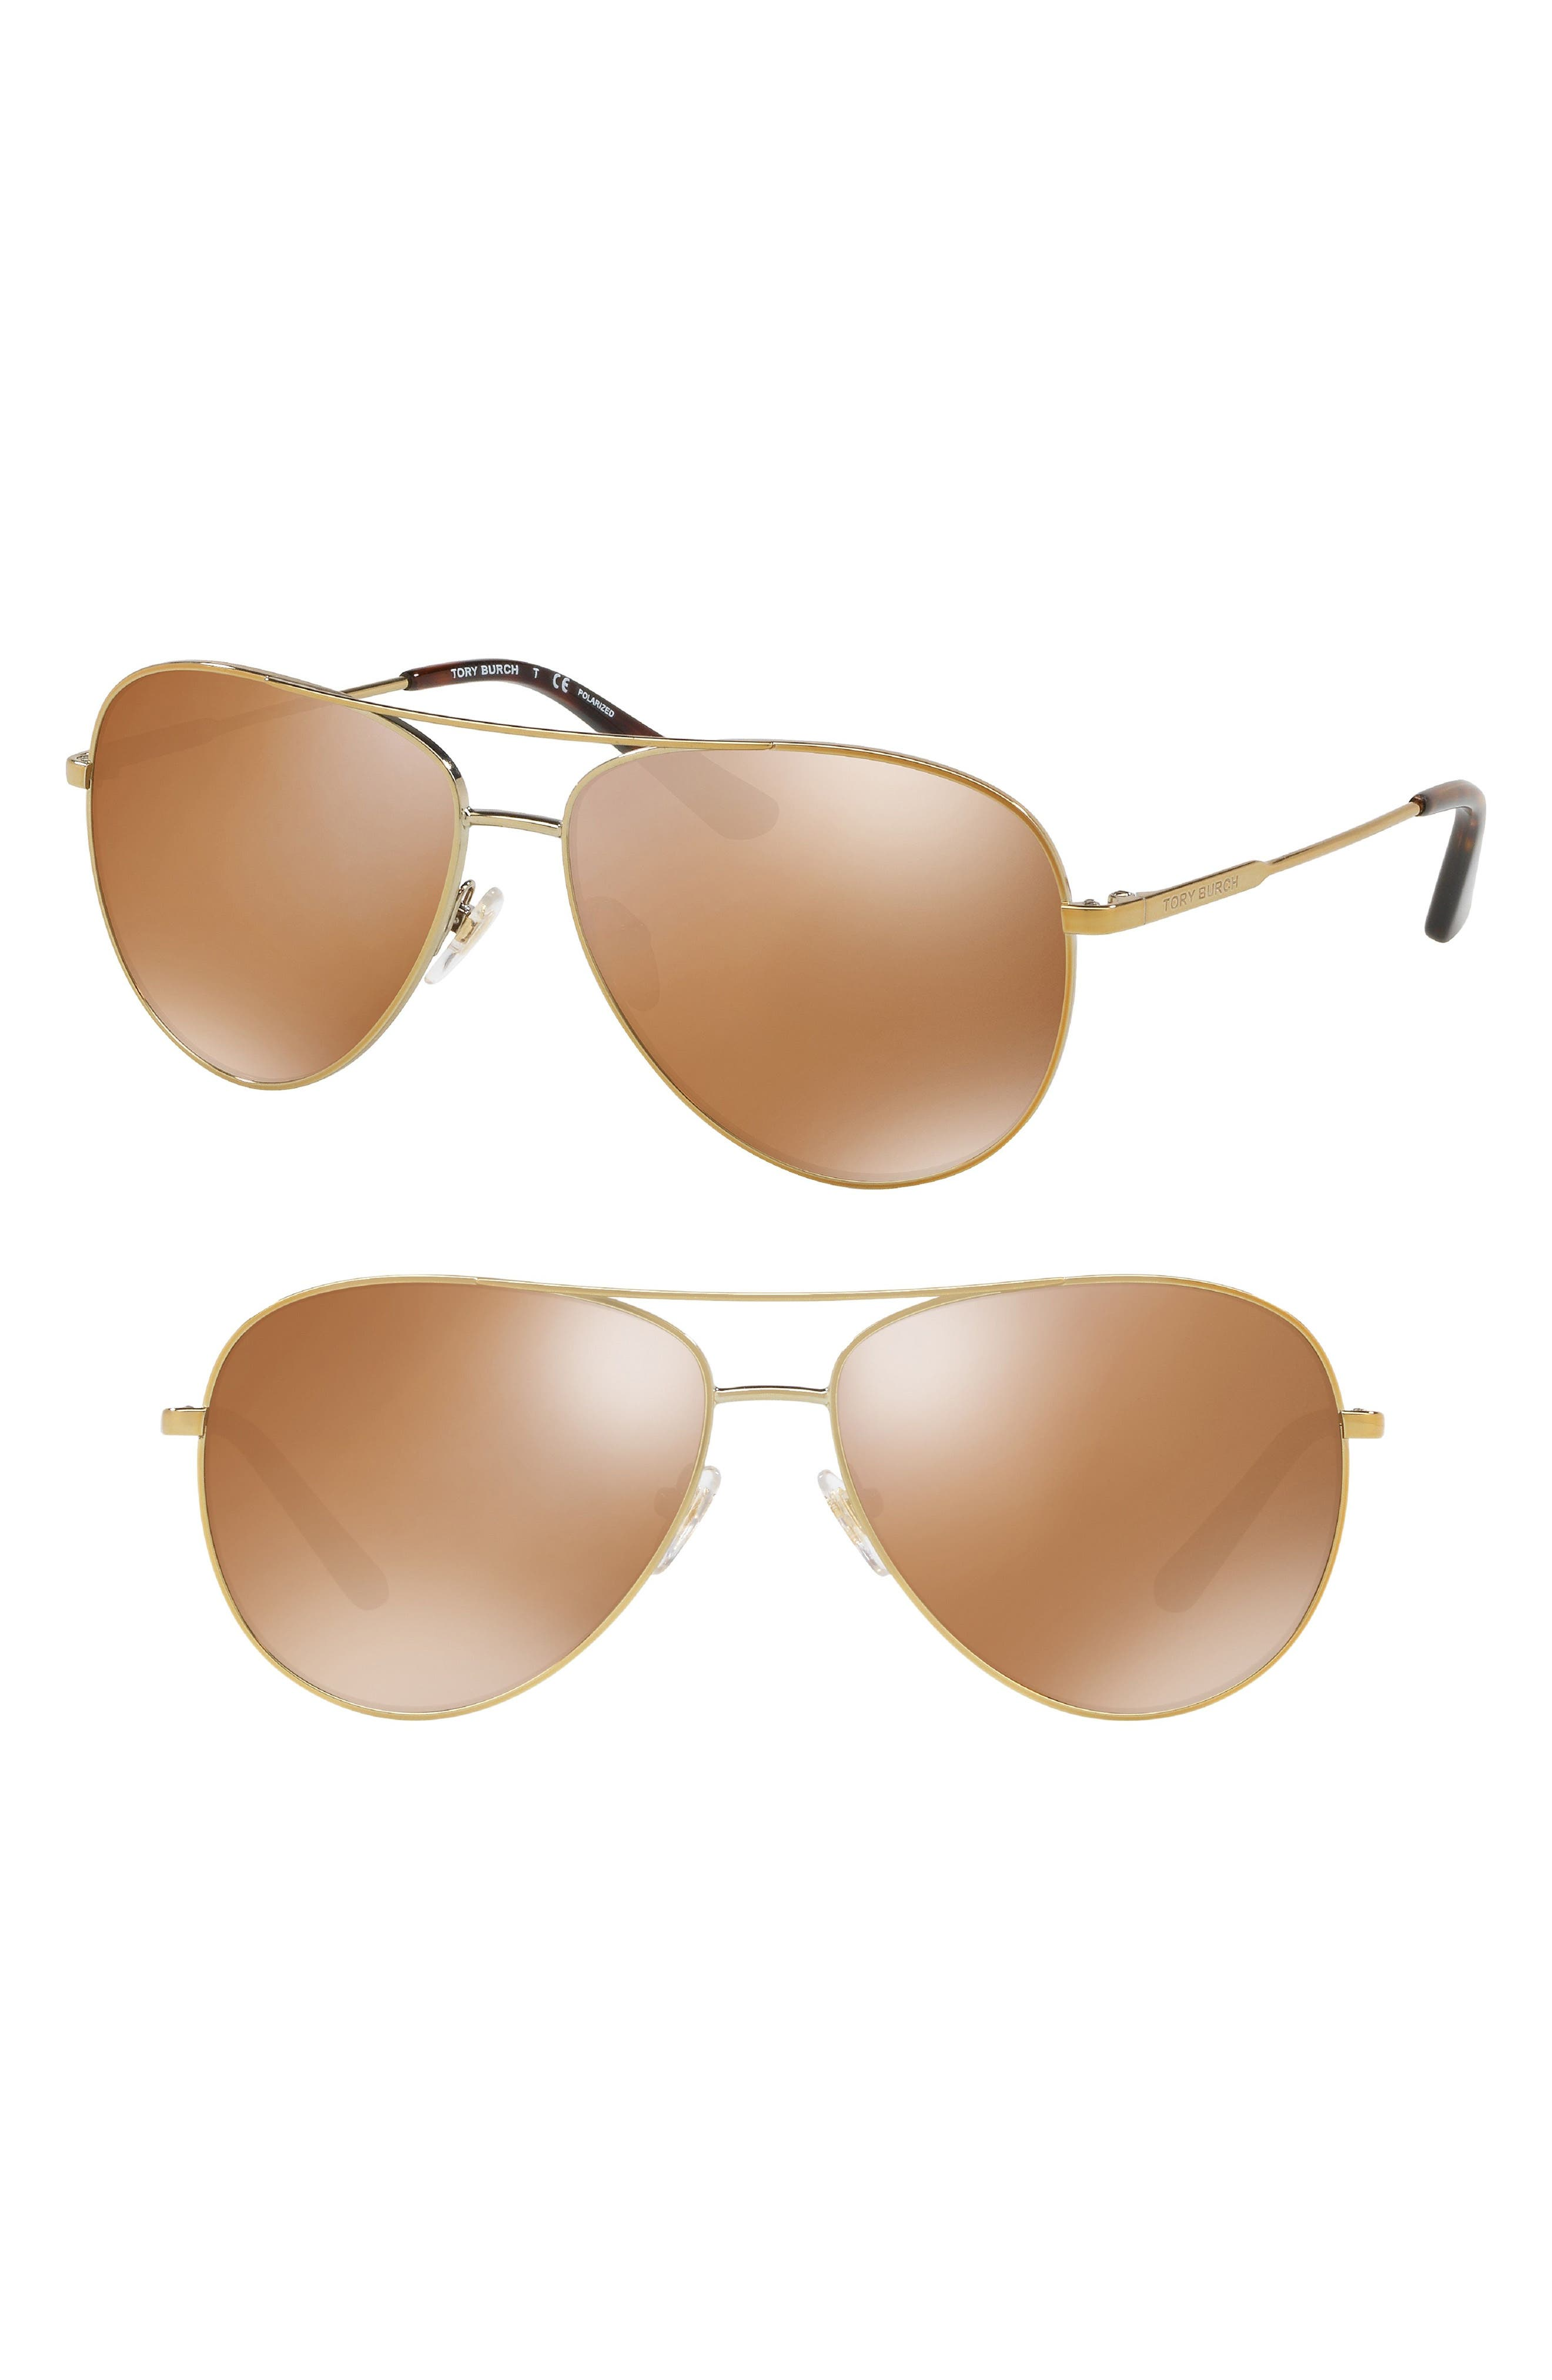 Alternate Image 1 Selected - Tory Burch 59mm Thin Polarized Metal Aviator Sunglasses